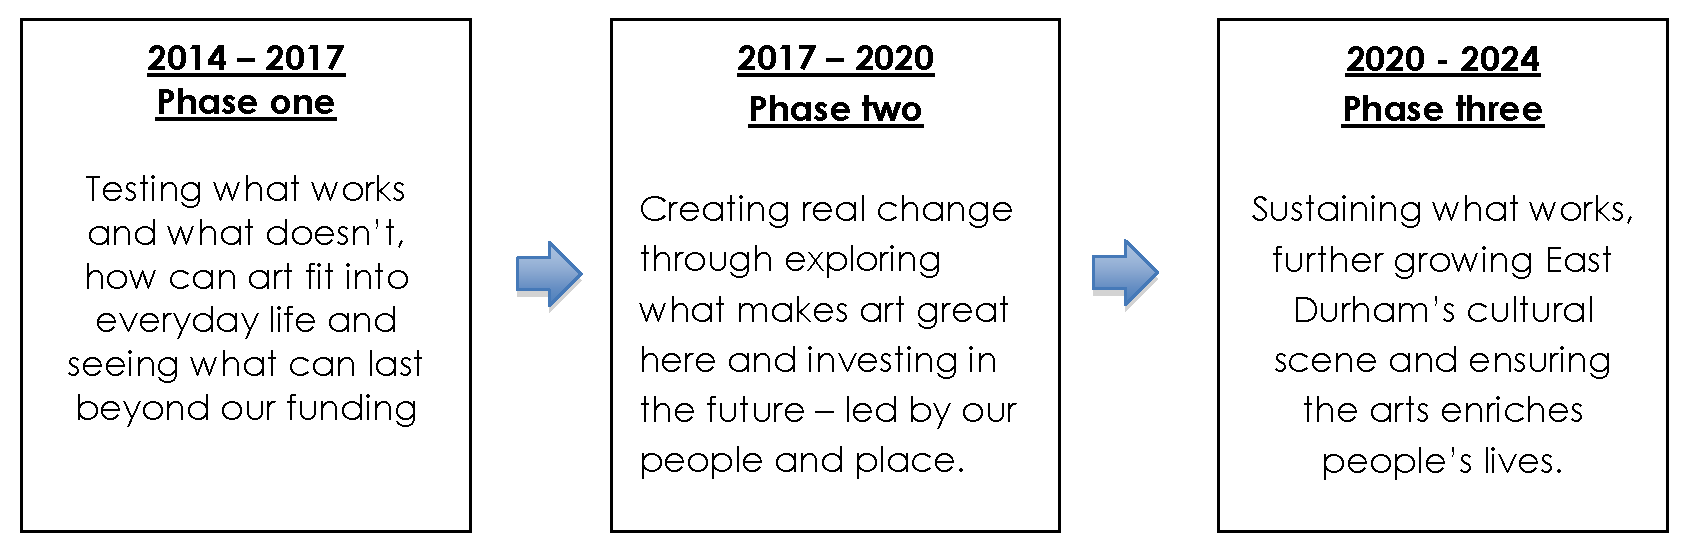 EDC 2017 - 2020 Key messages FINAL-2